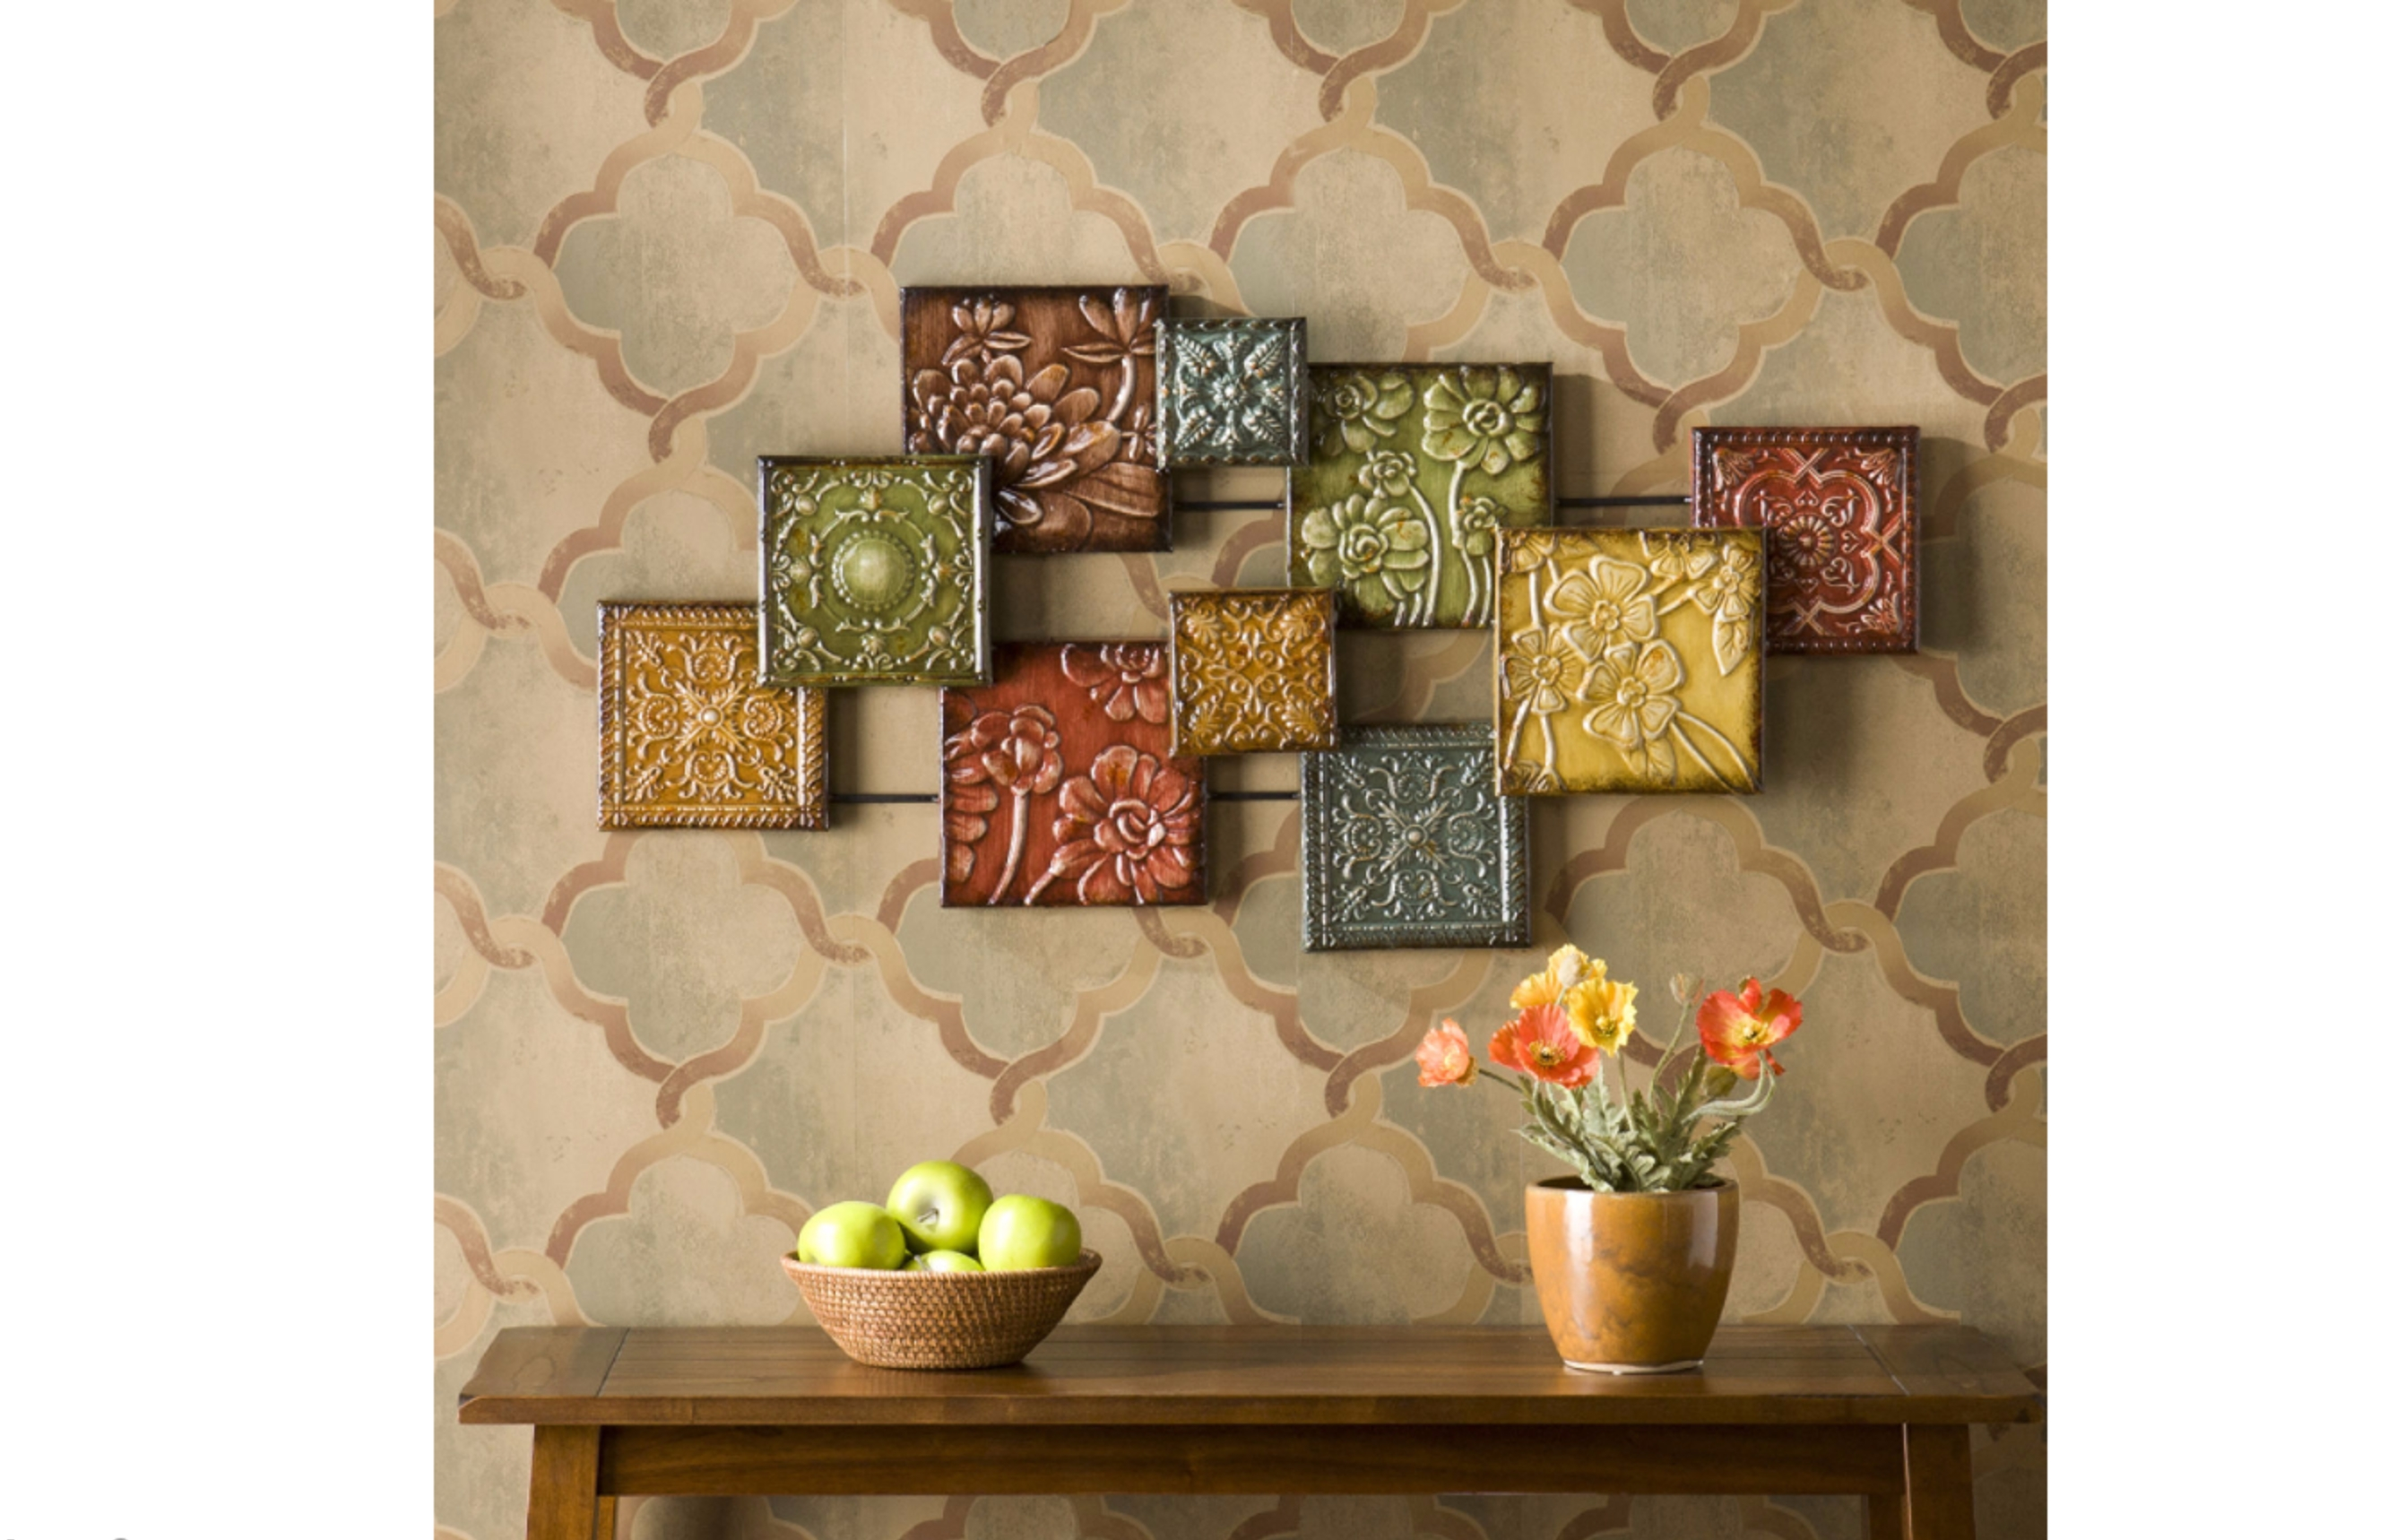 Wall Decor Ideas – Jcpenney Intended For Newest Jcpenney Canvas Wall Art (View 8 of 15)